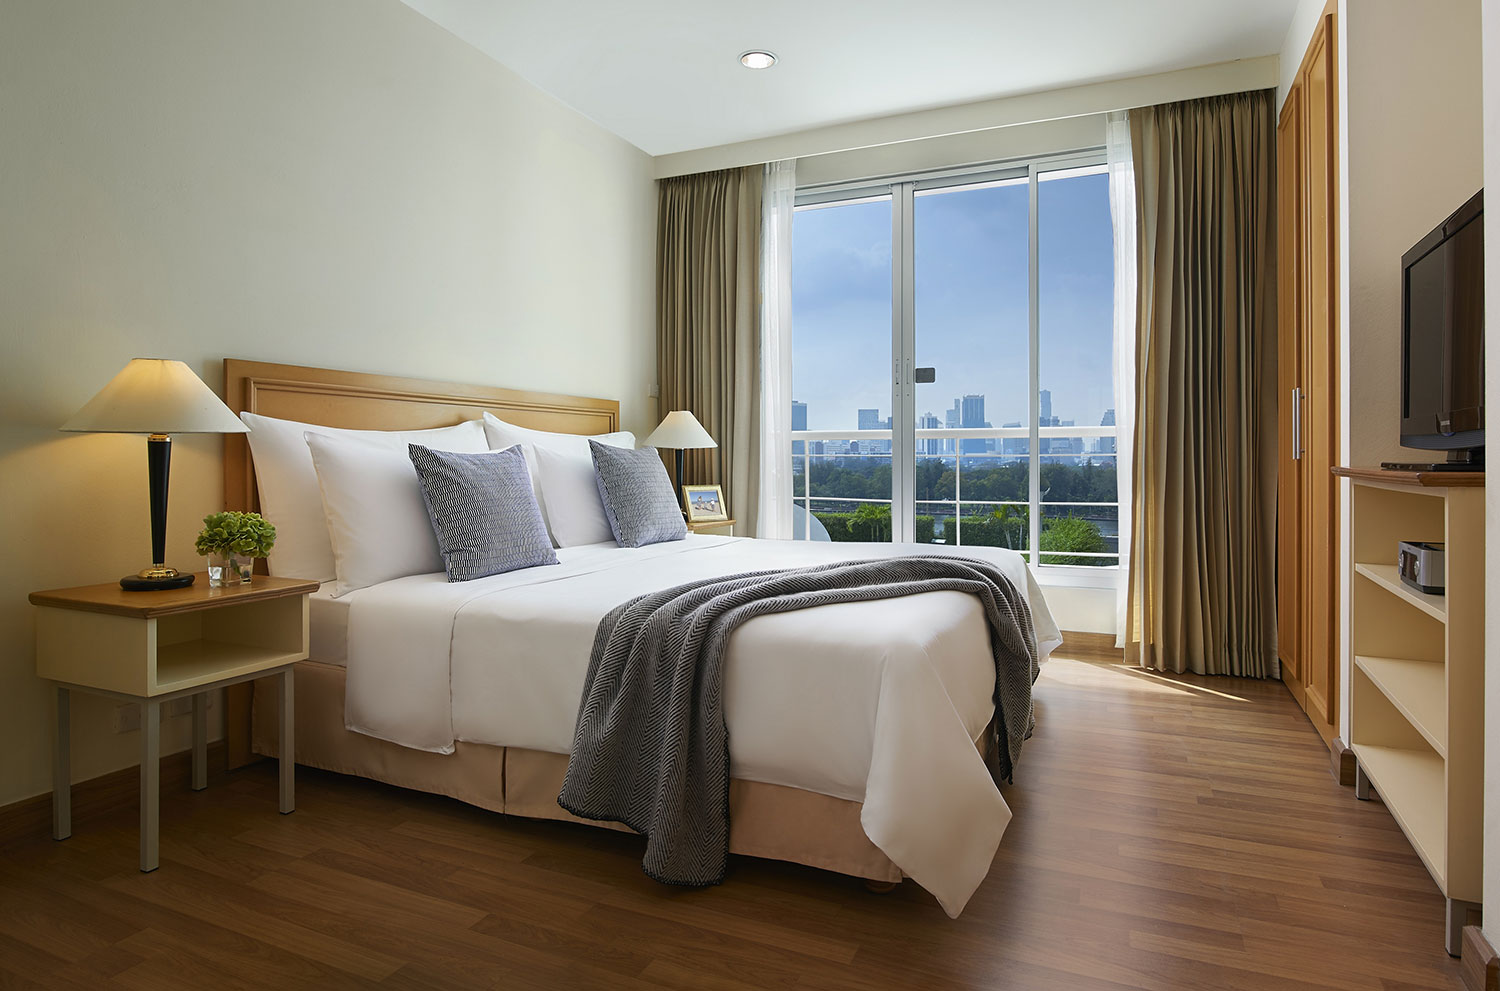 Shama-Lakeview-Asoke-Bangkok_Two-Bedroom-Executive_Master-Bedroom